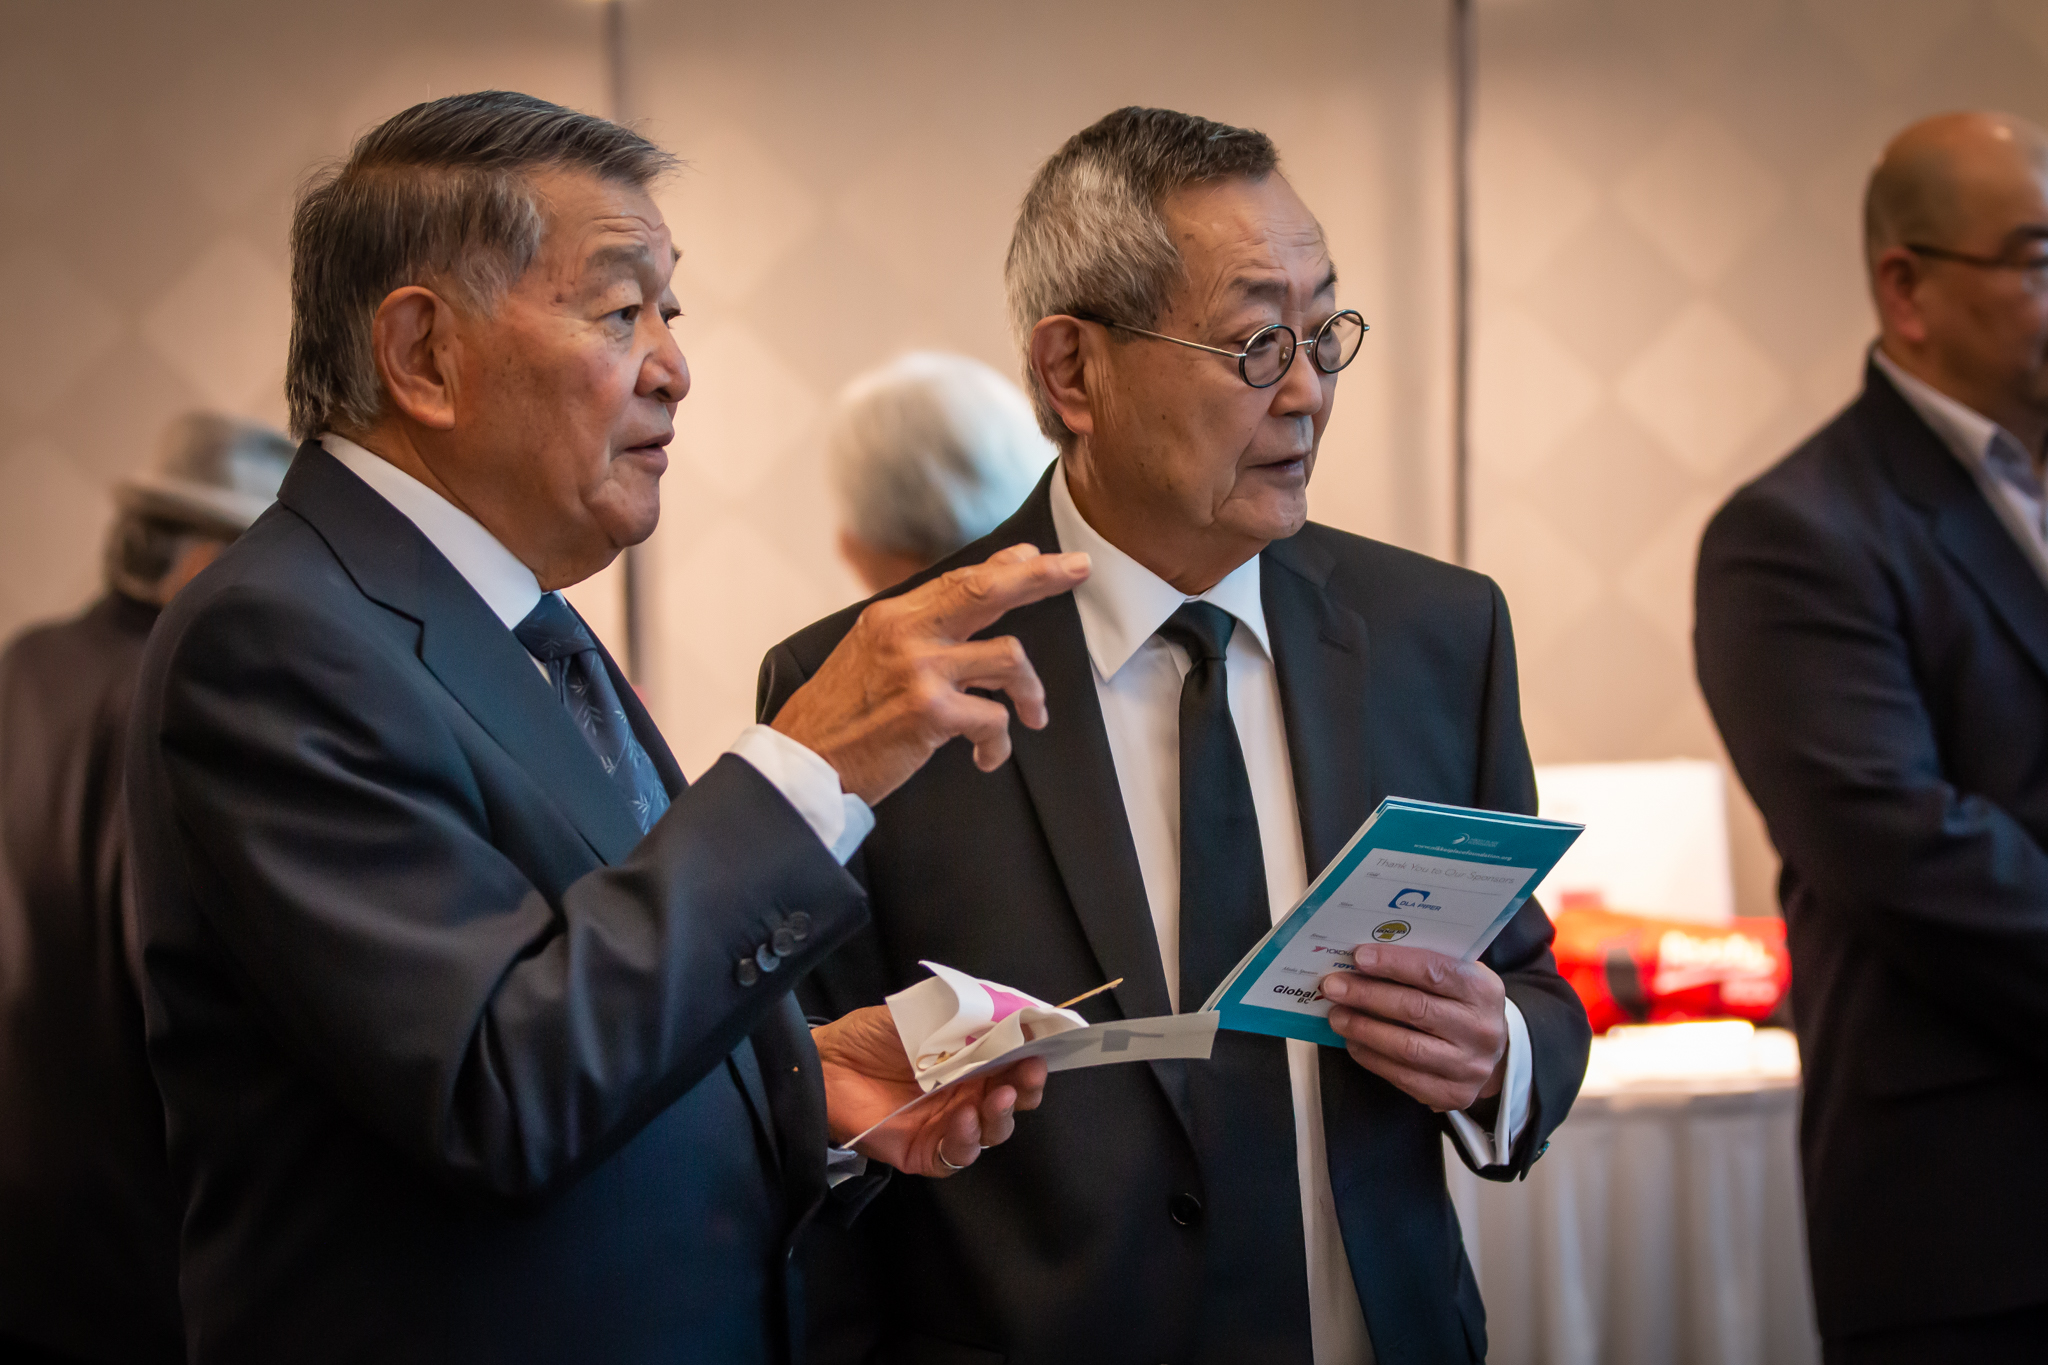 190310 Sakura Gala 2019 16-11-12 - Photo by Adam PW Smith.jpg